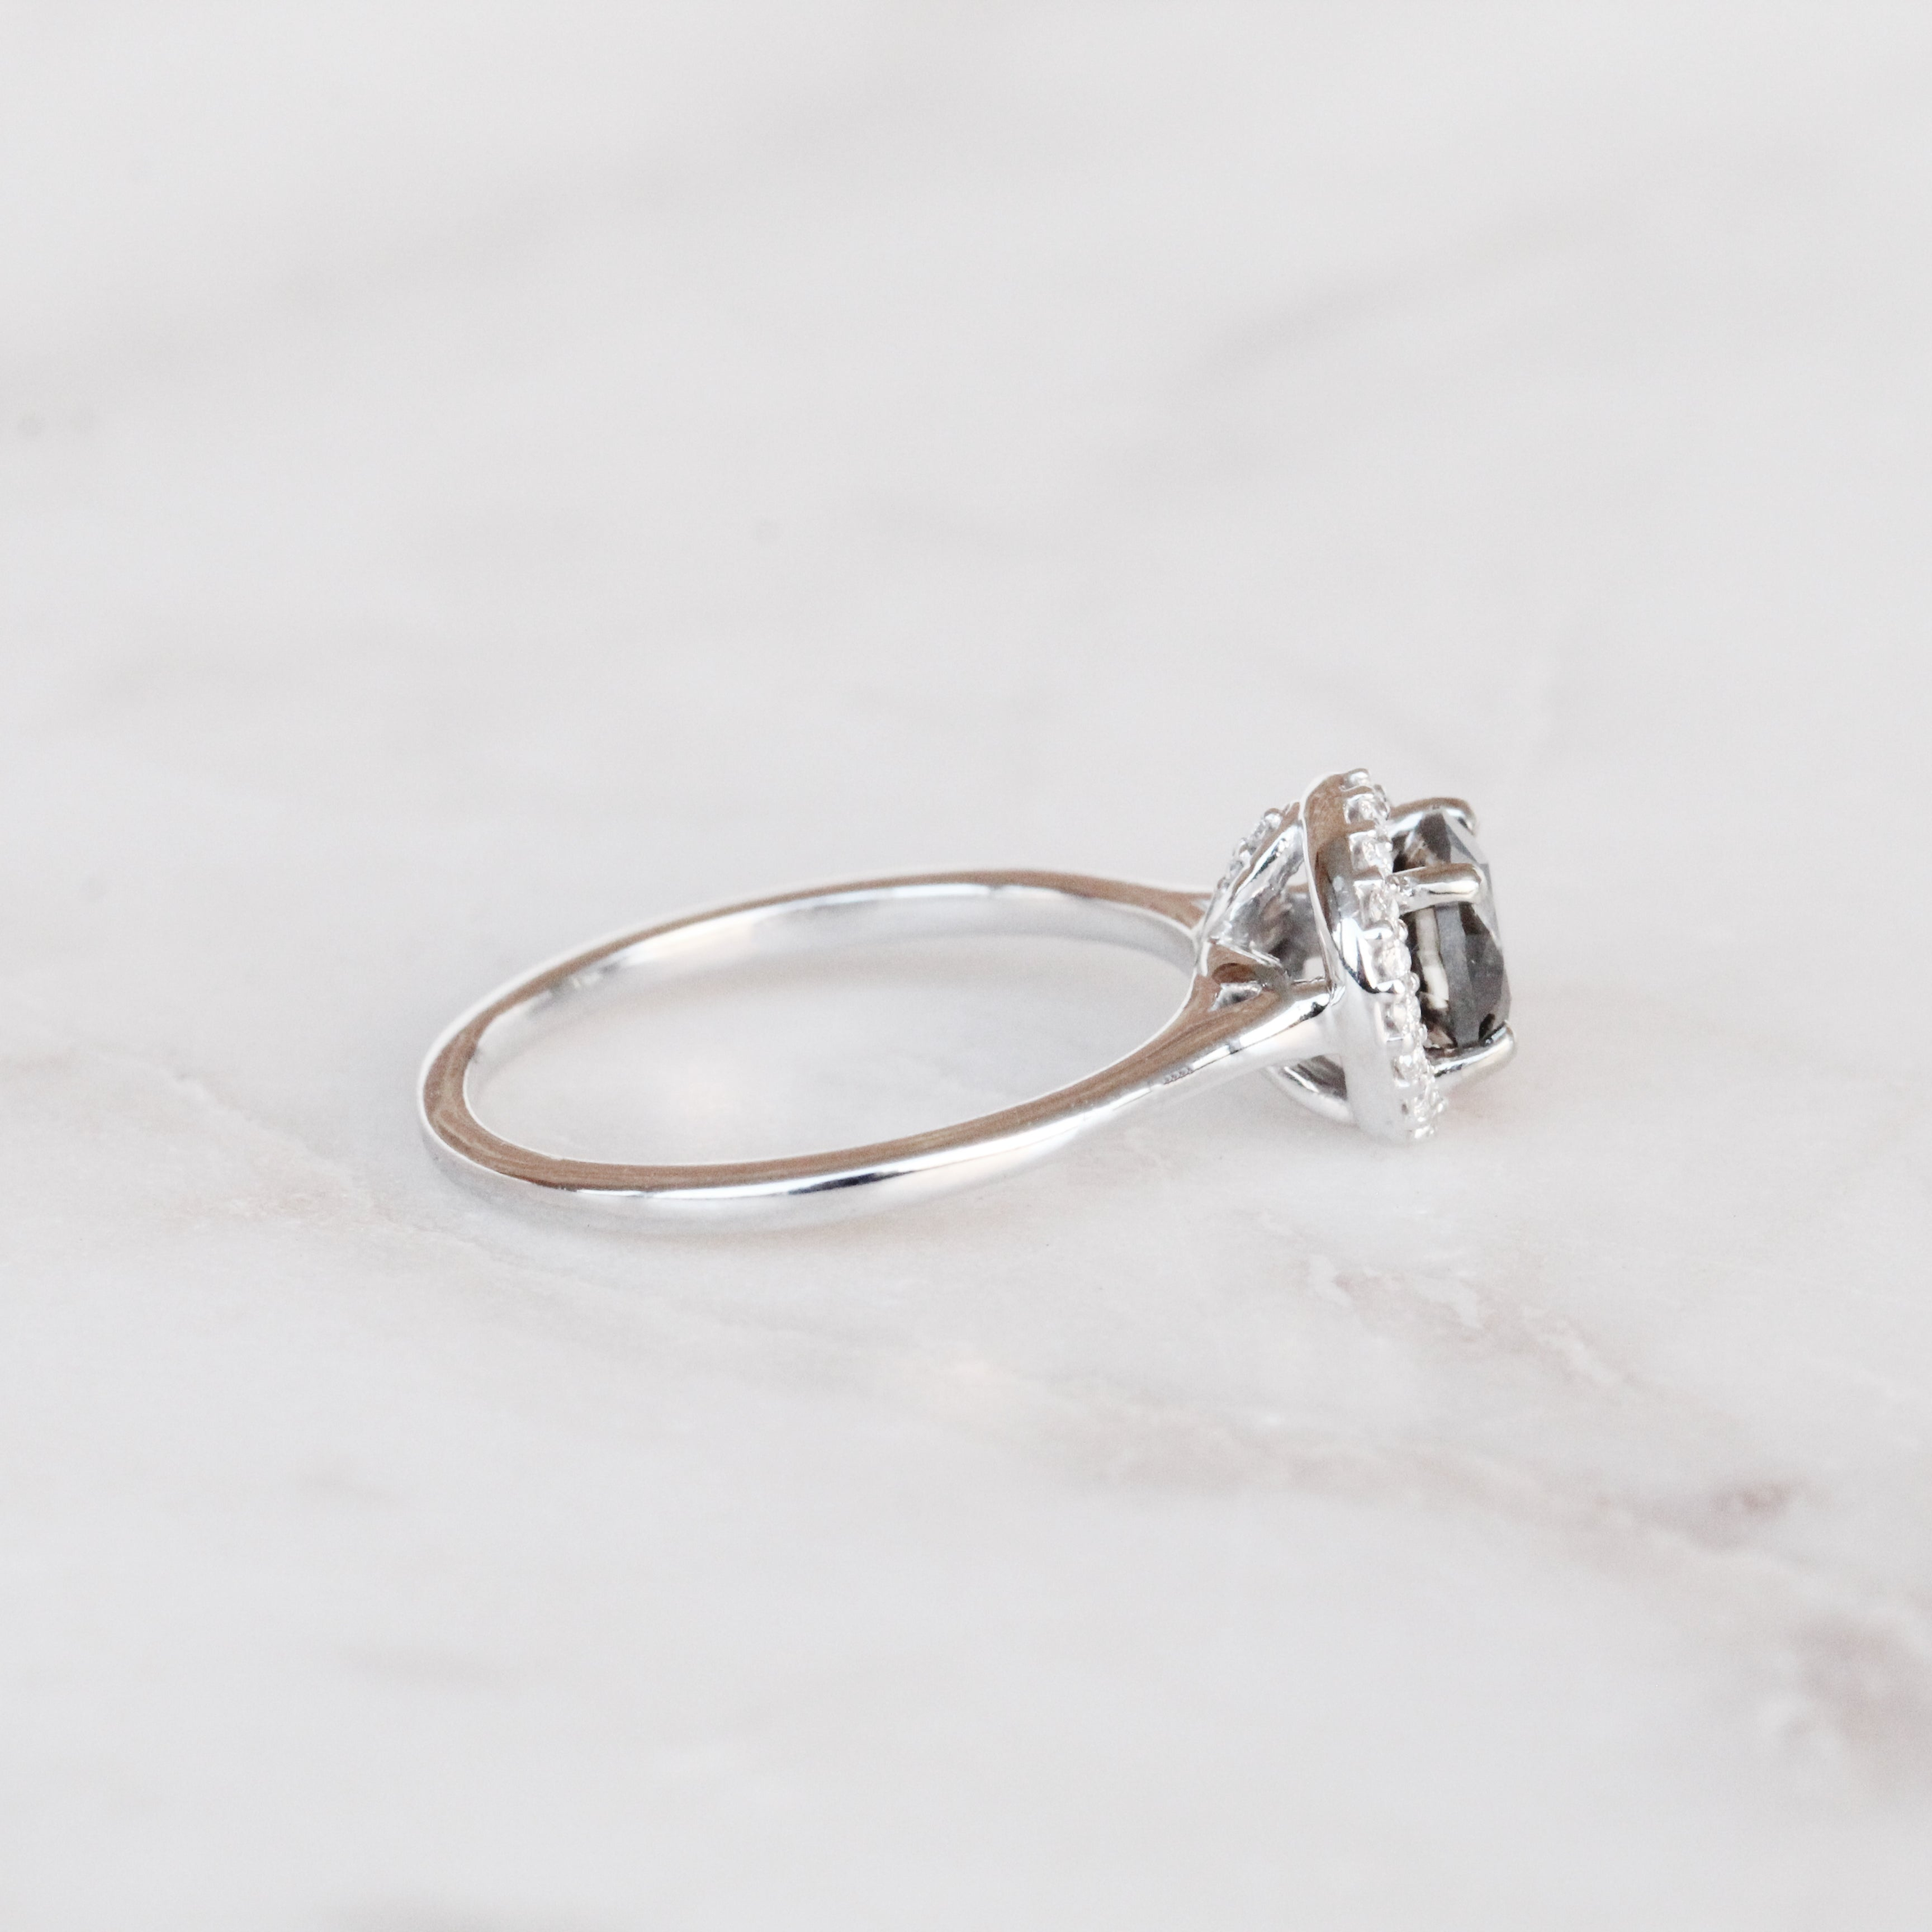 Coryn Ring with a 1.03 Carat Celestial Diamond and Clear Diamond Halo in 14k White Gold - Ready to Size and Ship - Salt & Pepper Celestial Diamond Engagement Rings and Wedding Bands  by Midwinter Co.